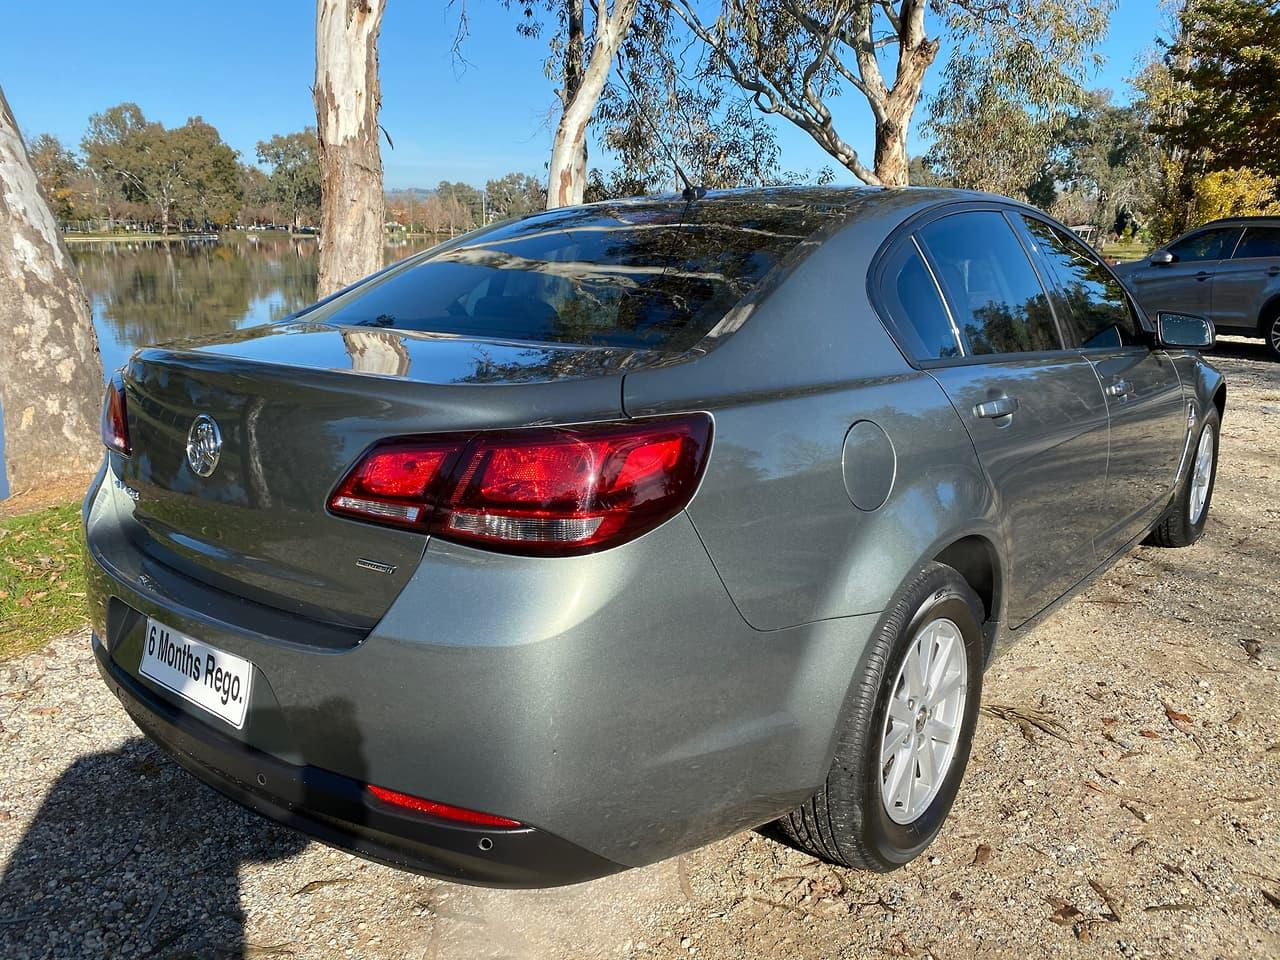 2016 Holden COMMODORE VF Series II EVOKE